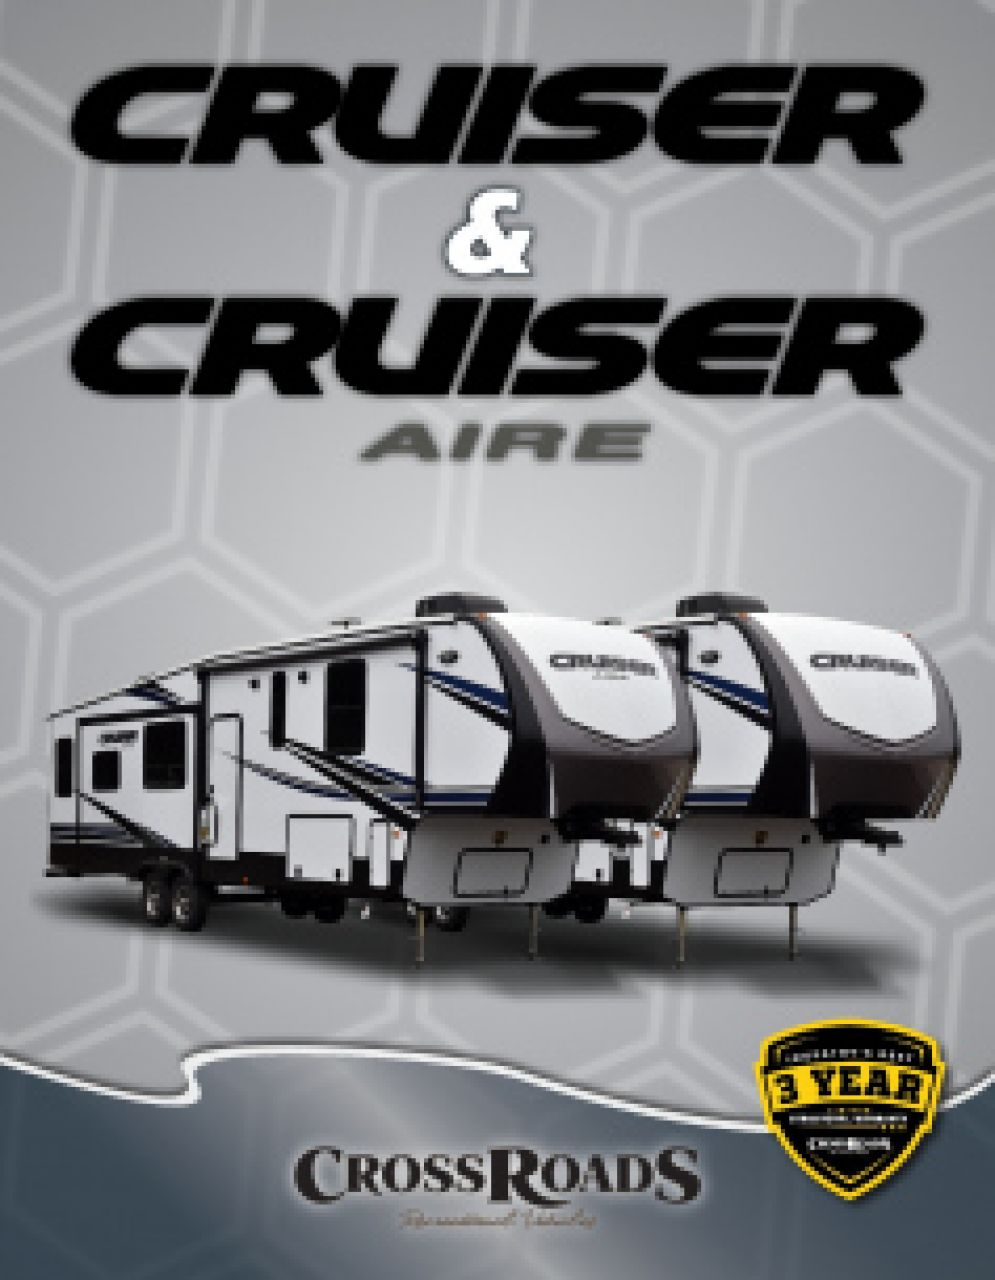 2019 CrossRoads Cruiser RV Brochure Cover